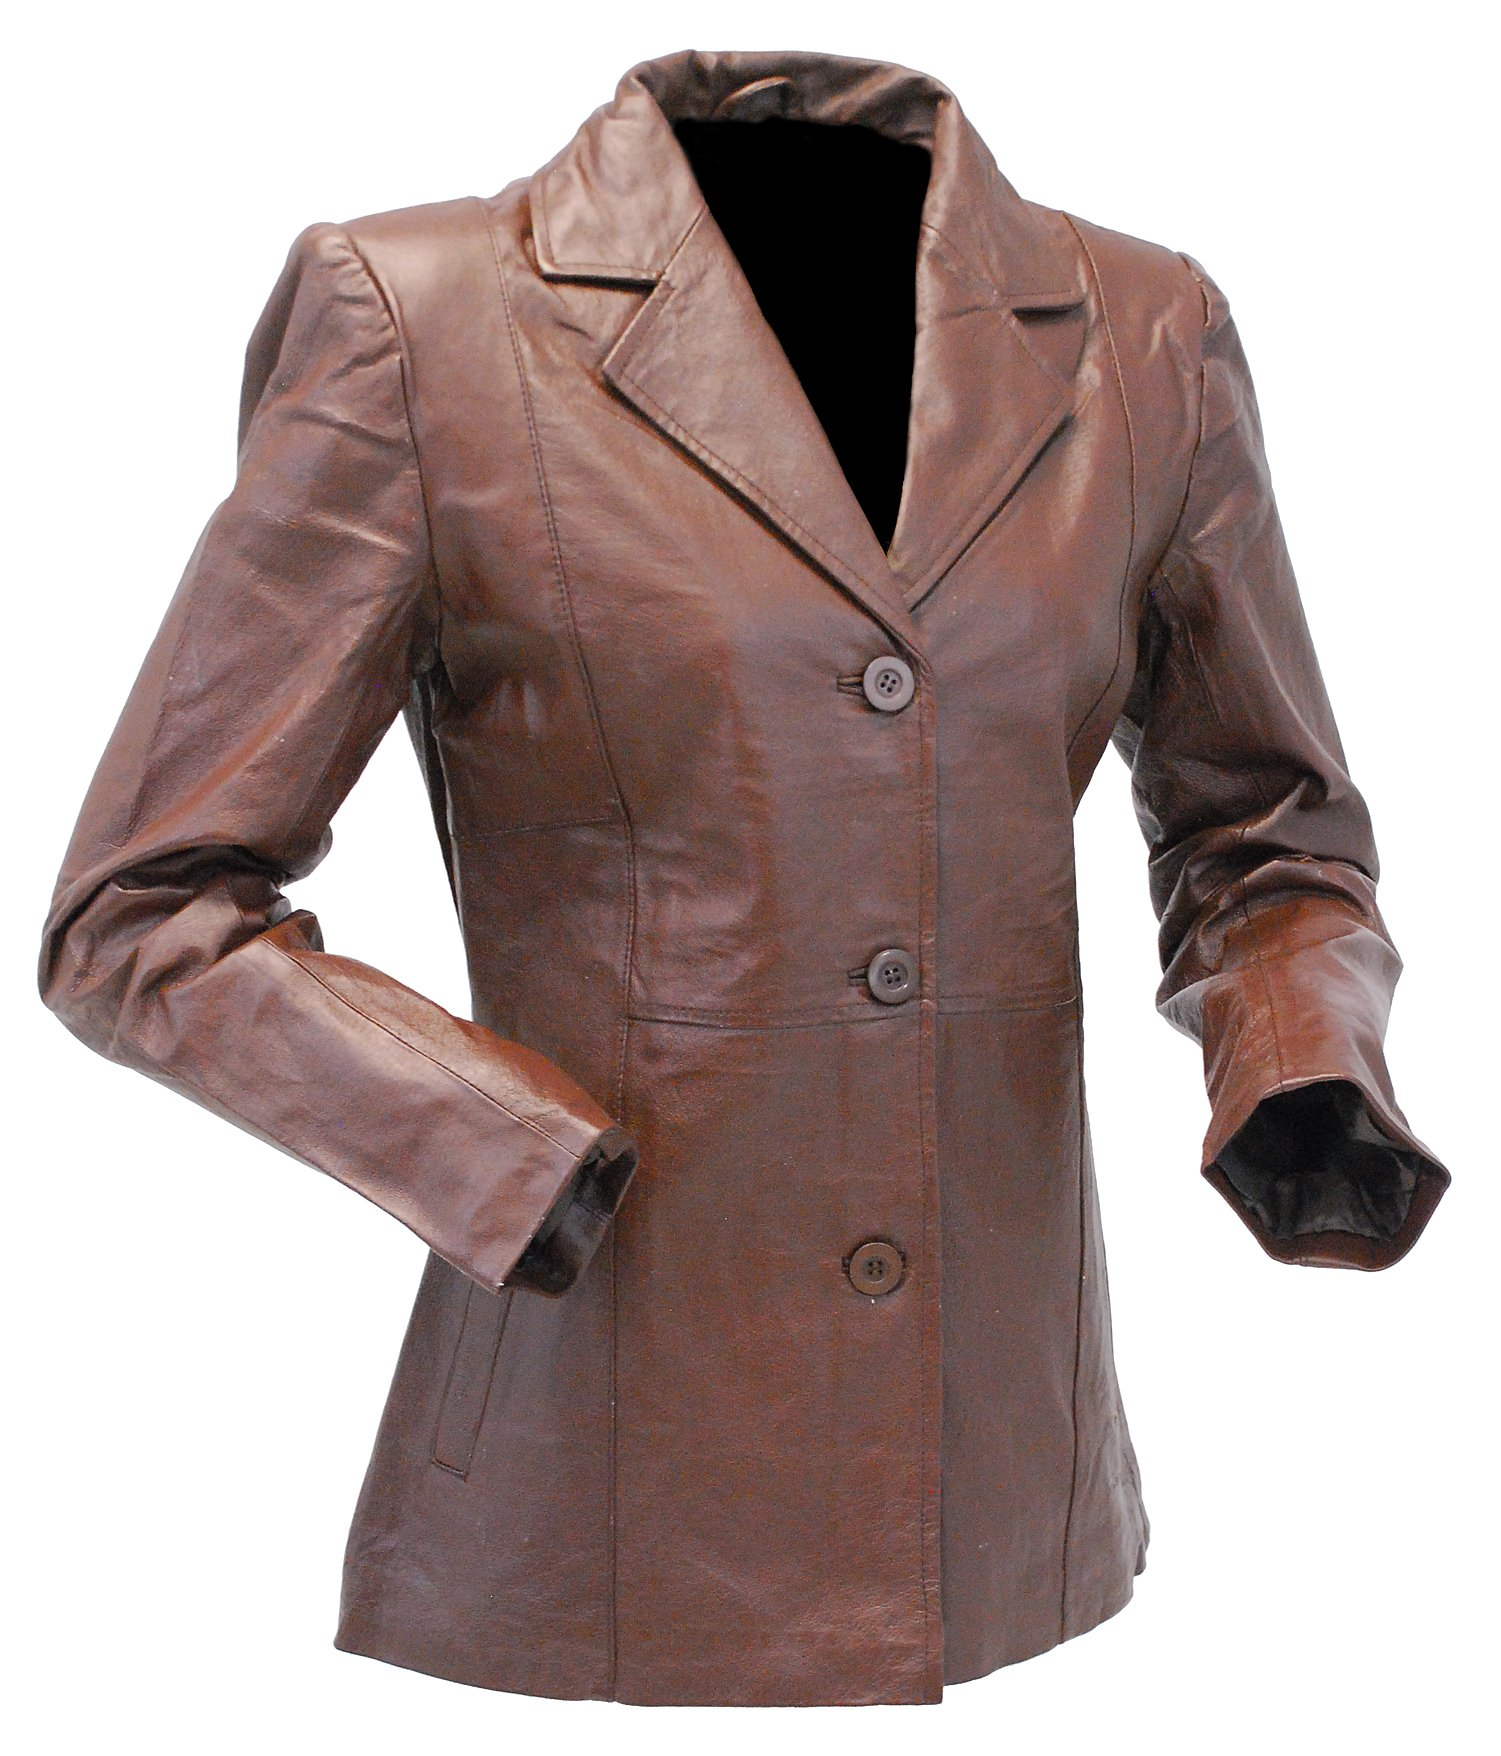 Jamin' Leather Brown Lightweight Women's 3 Button Leather Coat (L) #L31BTN by Jamin' Leather